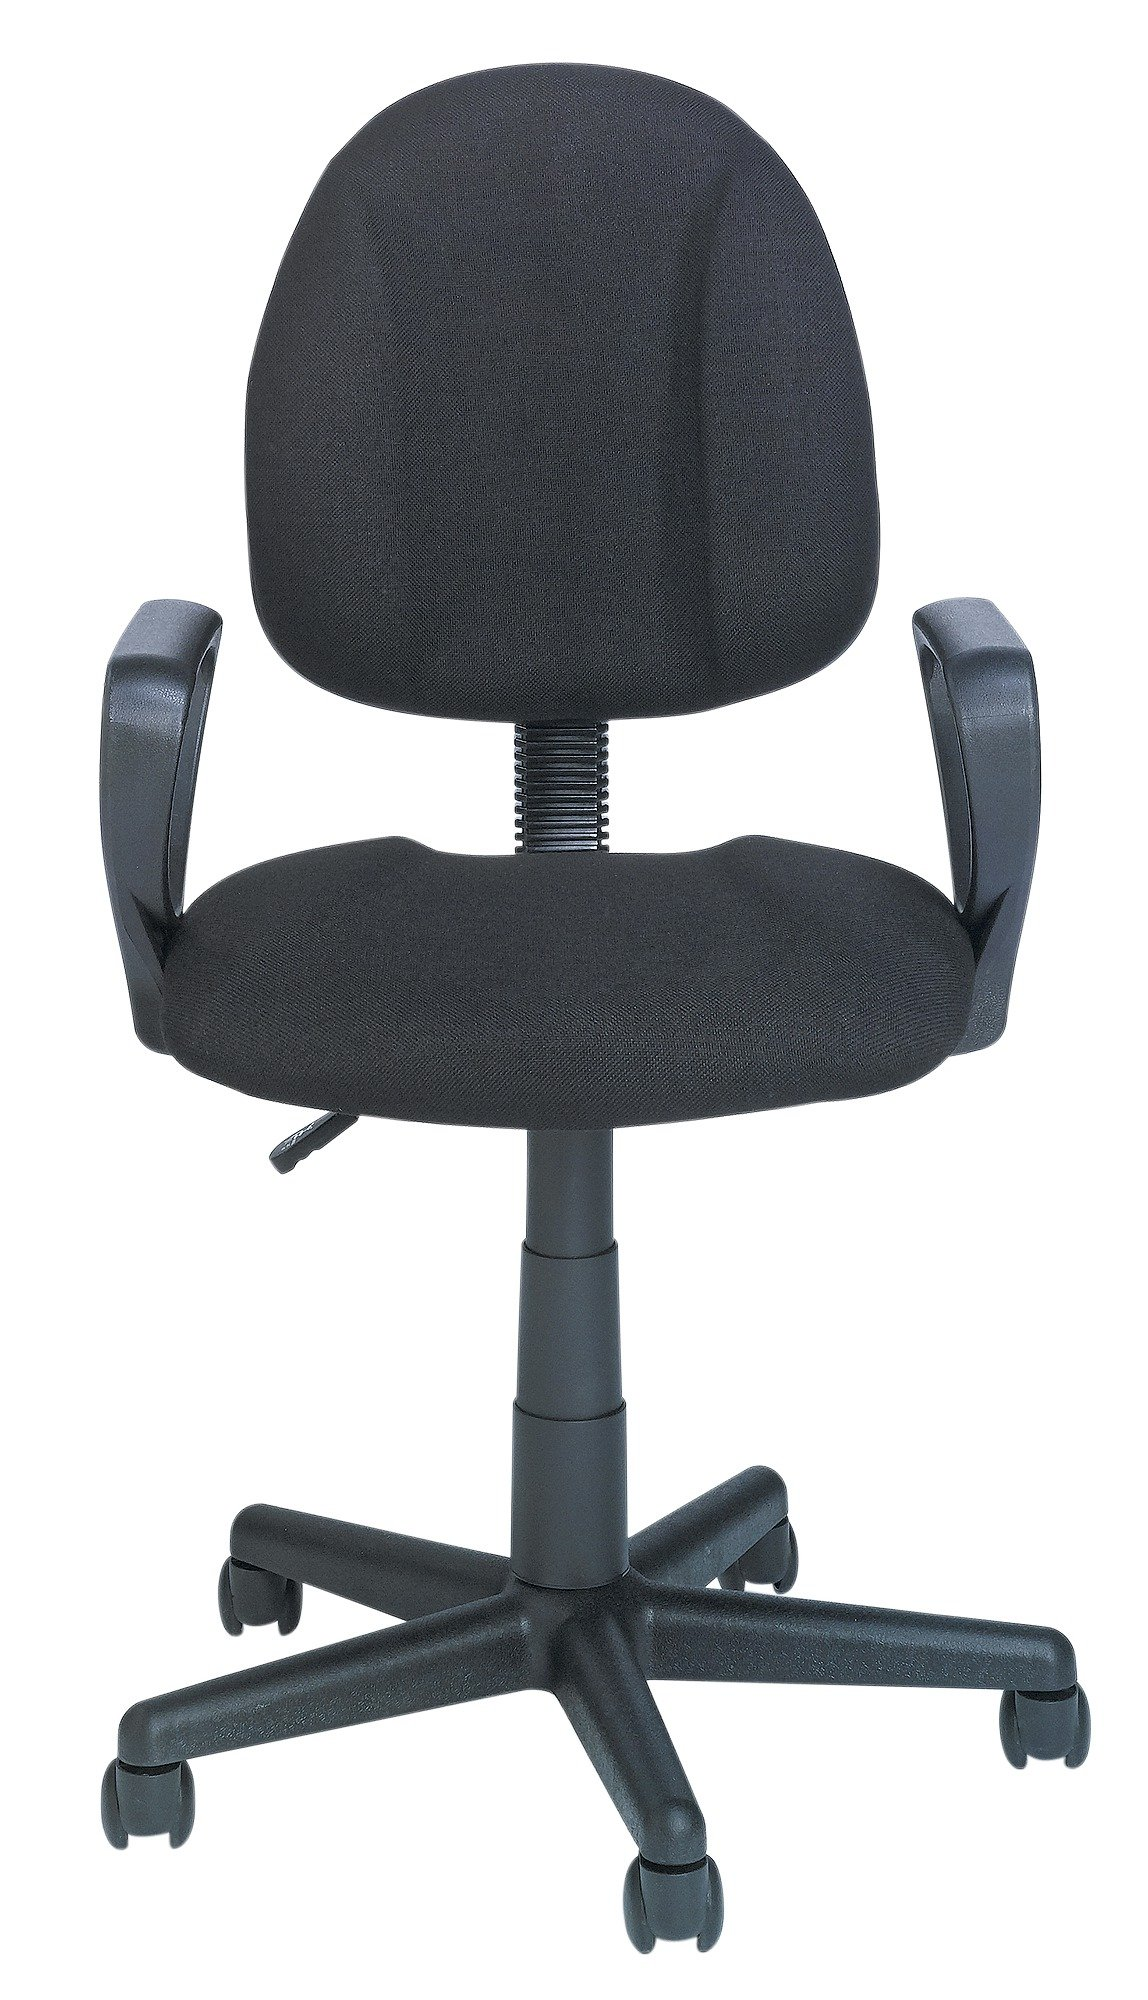 Image of Blake Gas Lift Height Adjustable - Office Chair - Black